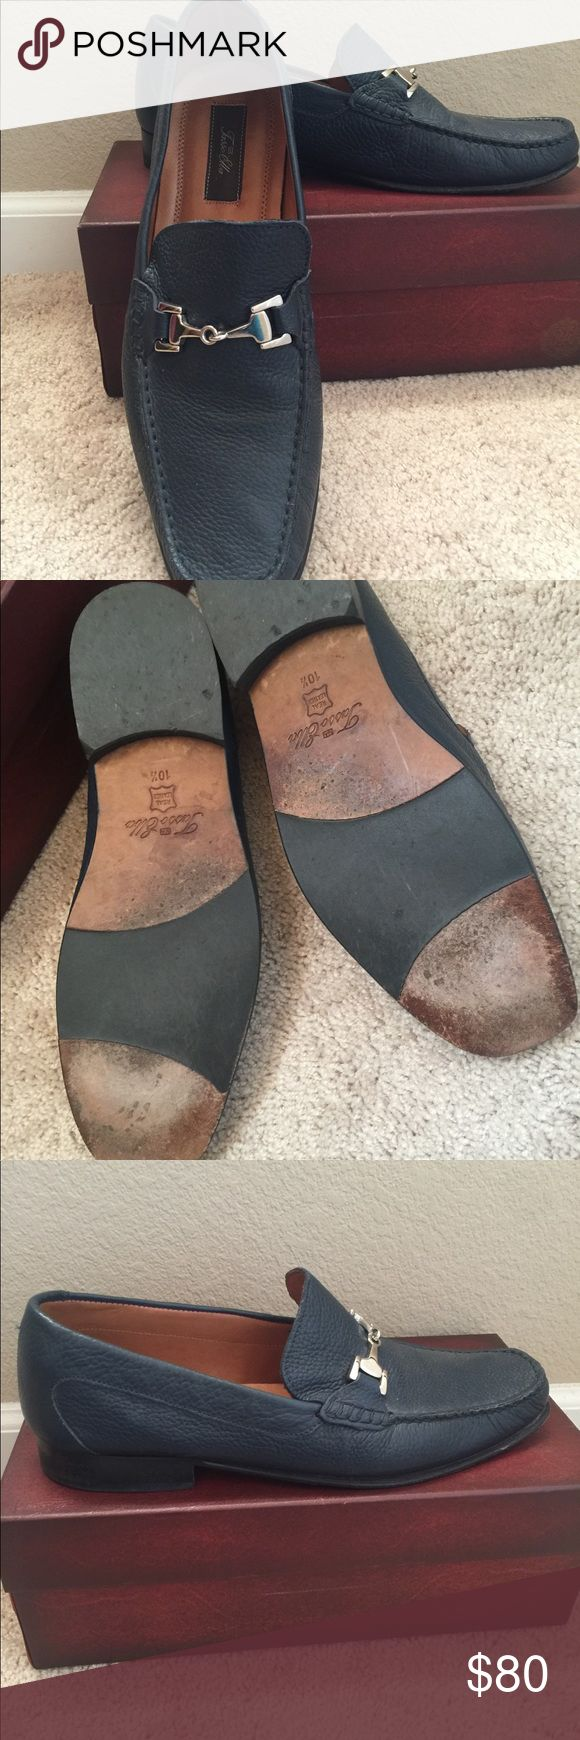 Tasso Elba Navy Loafers EUC Italian loafers. Worn only twice. They run 1/2 size large. Marked as 10.5 but fit like an 11. Tasso Elba Shoes Loafers & Slip-Ons